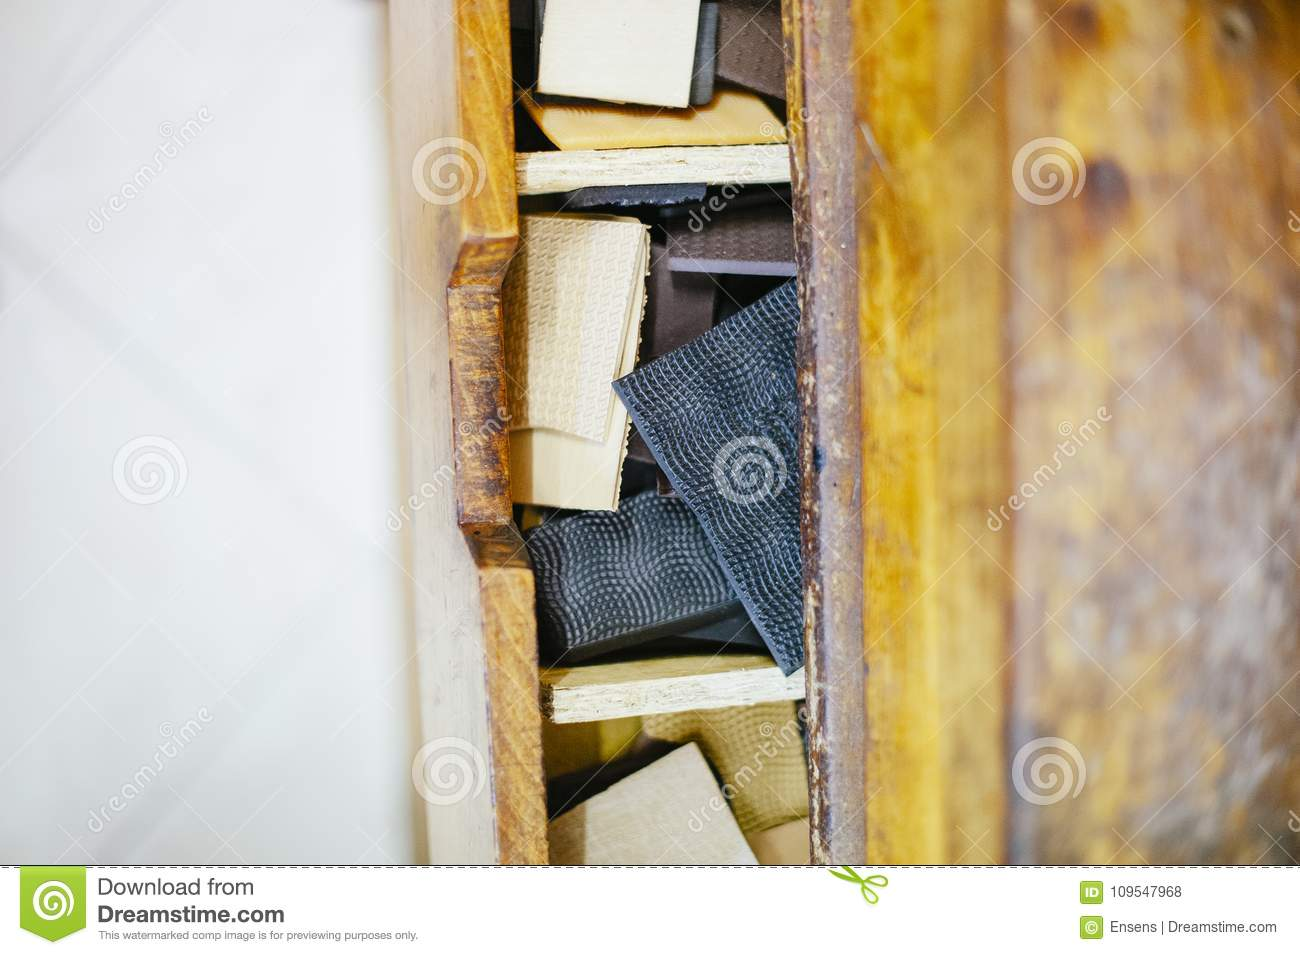 559f66c21cbc9 Shoemaker Workshop Chest With Pieces Of Sole Seen From Above Stock ...